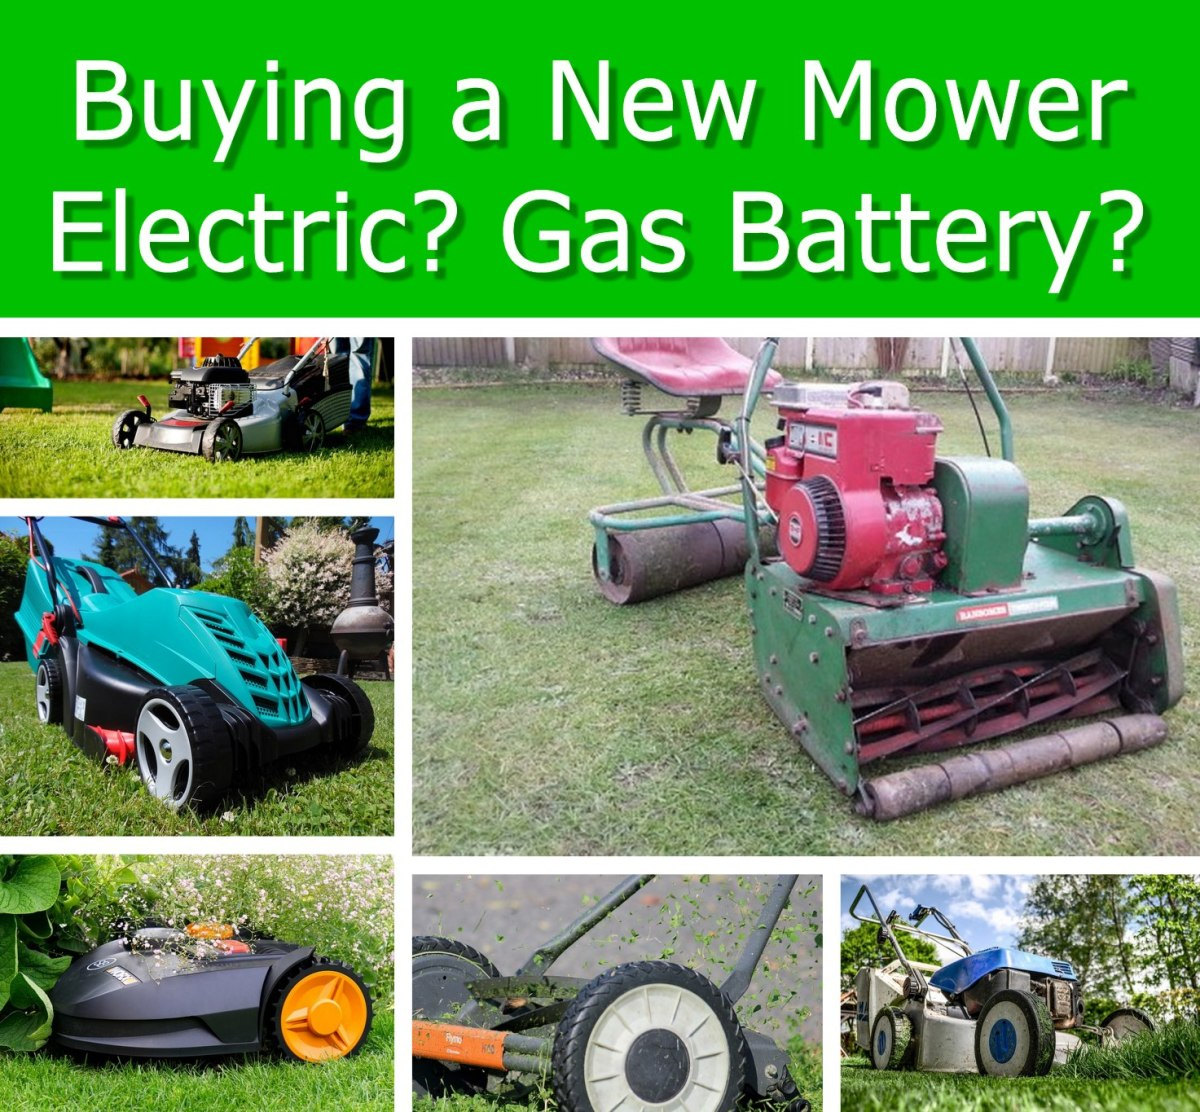 What to Look for When Buying a Lawn Mower—Electric, Gas, Battery